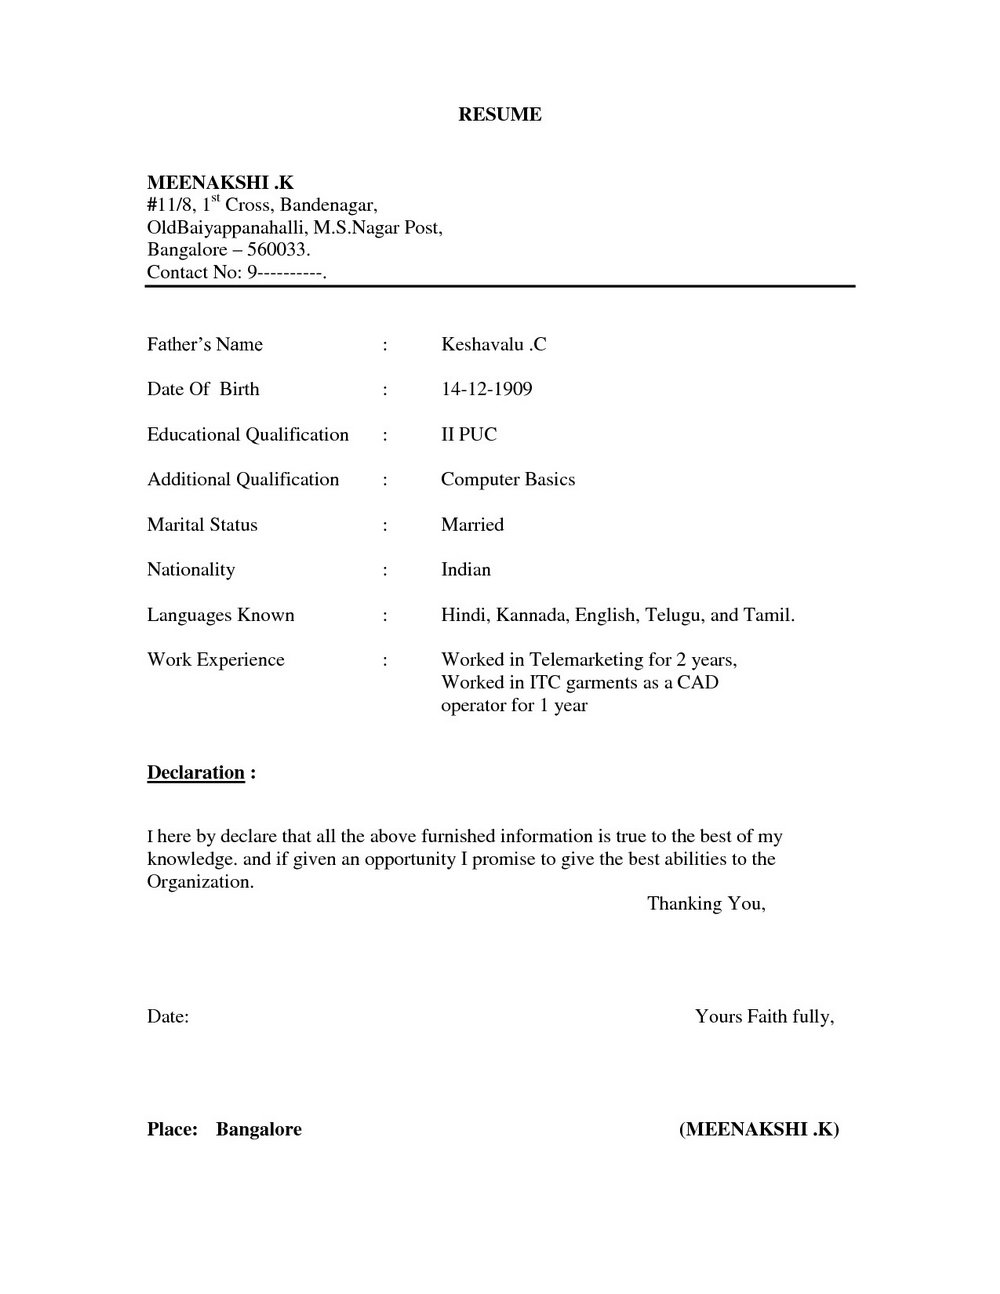 Free Download Simple Resume Format In Ms Word